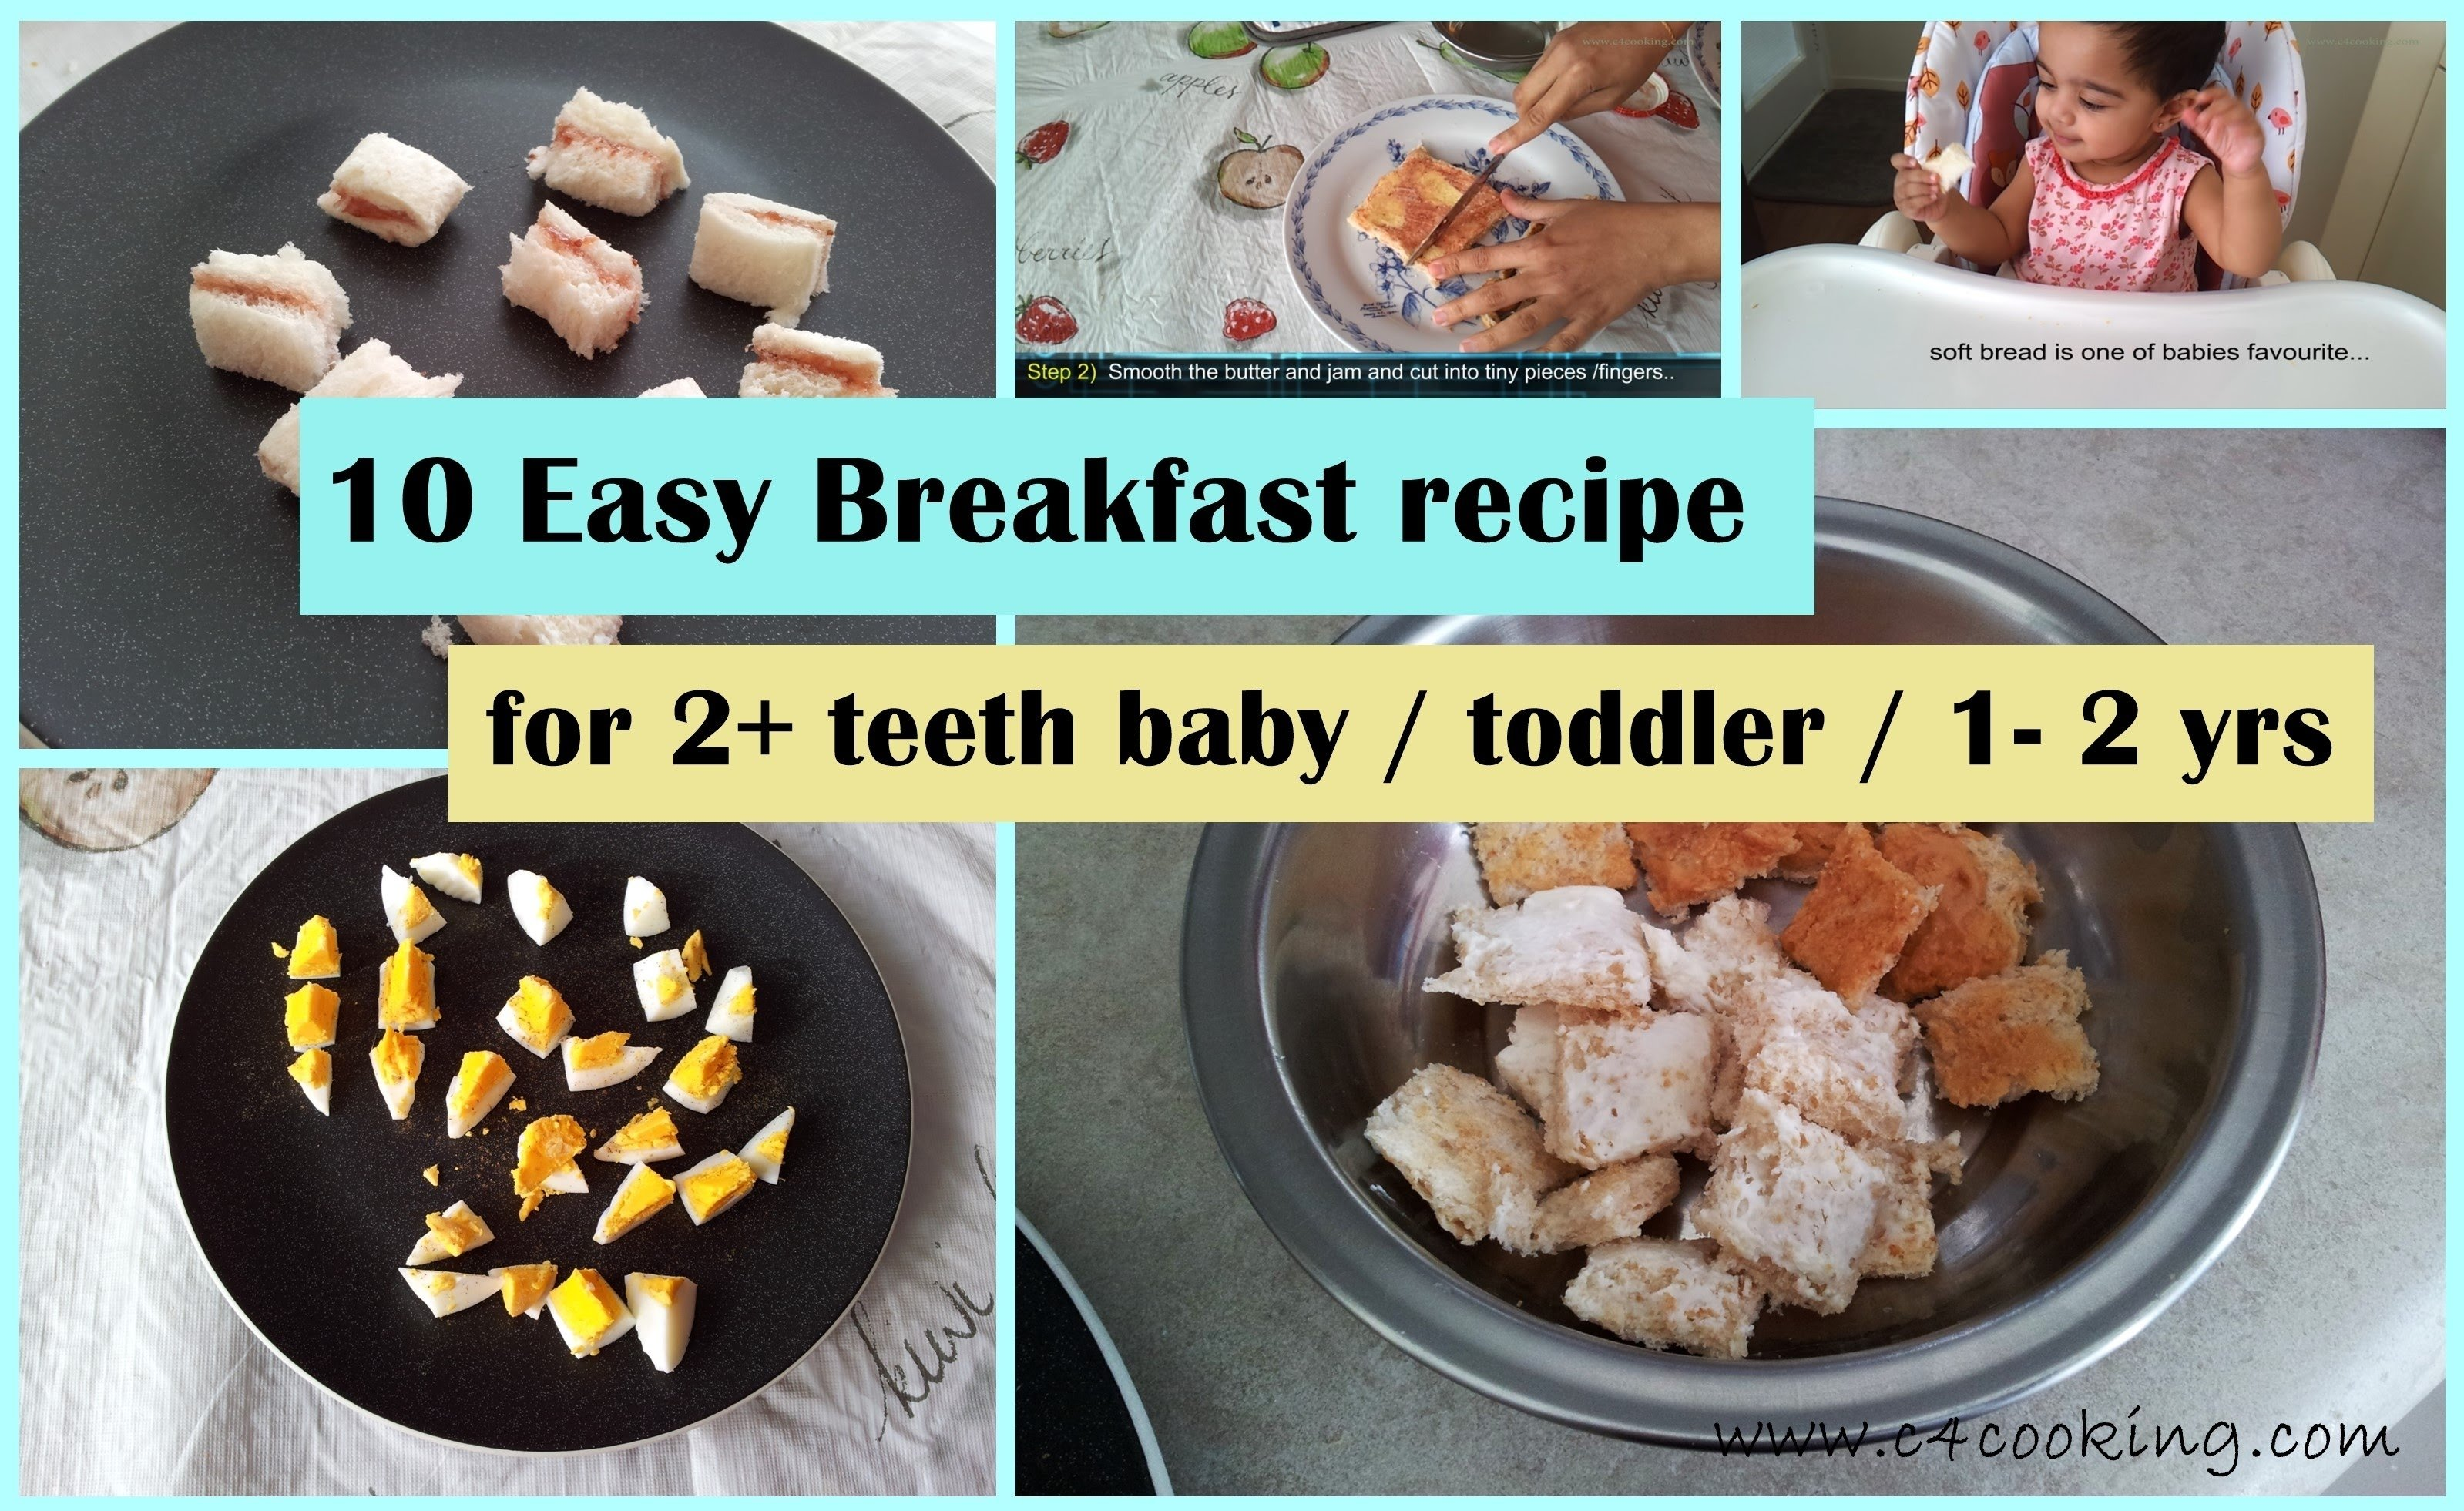 10 easy breakfast ideas ( for 2+ teeth baby / toddler / 1-2 yrs